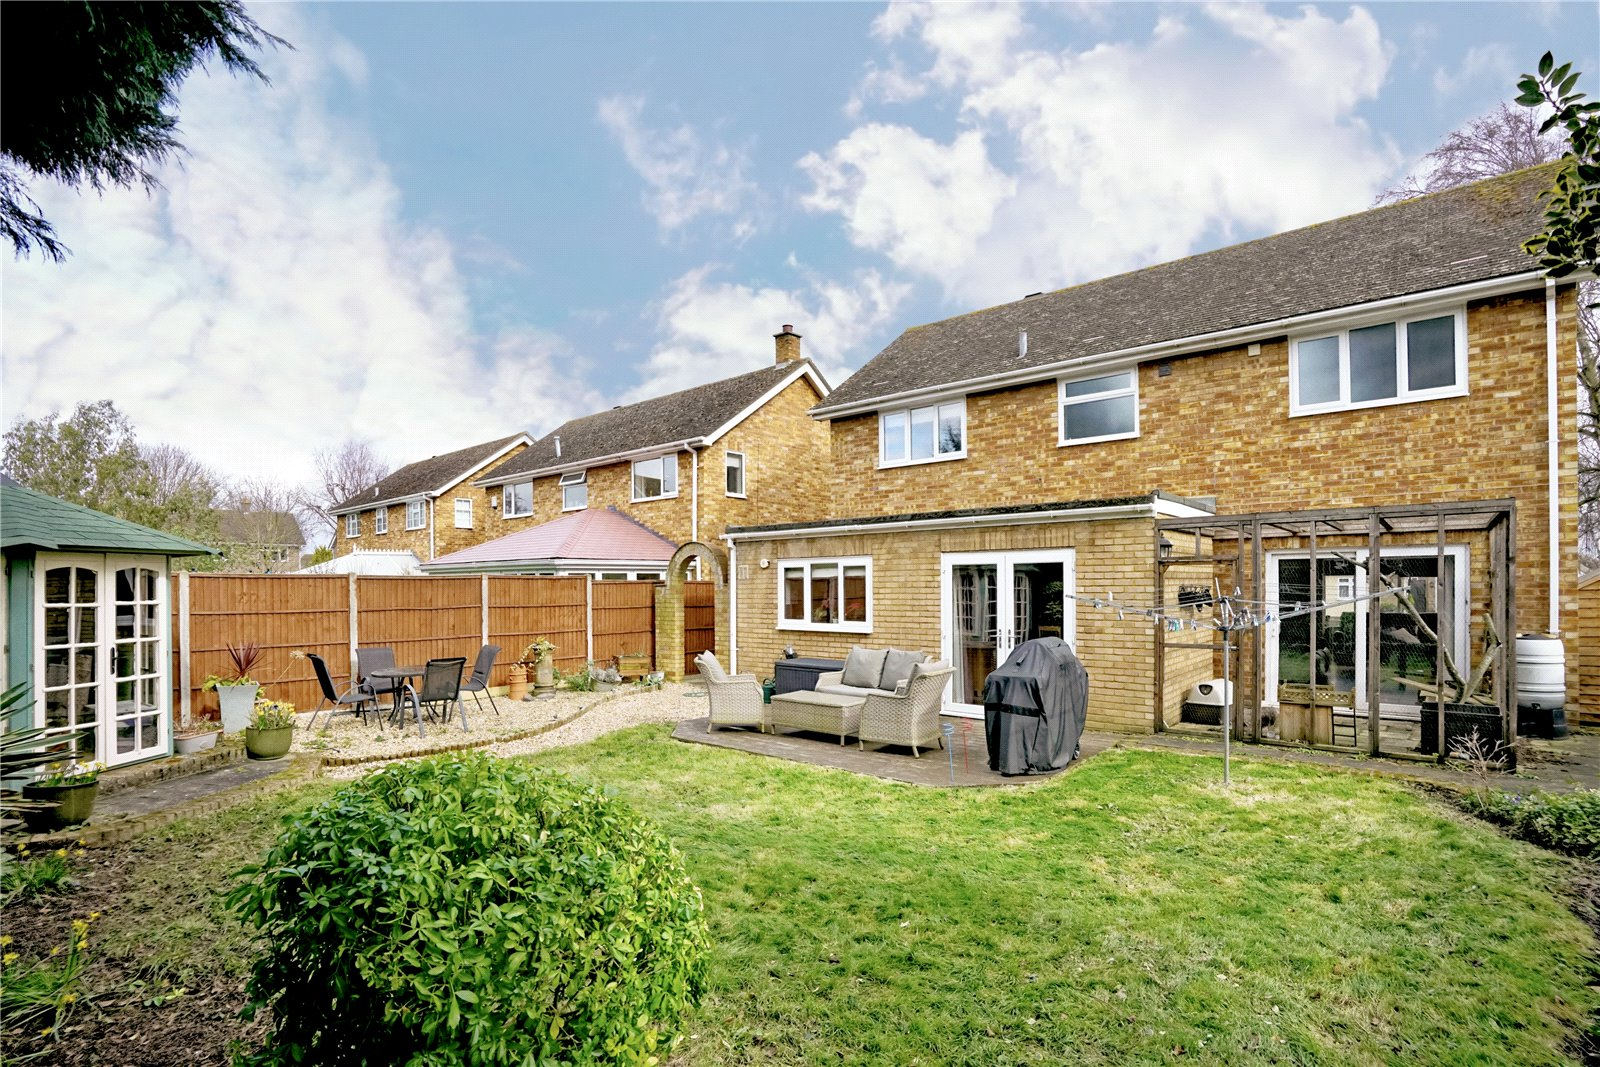 3 bed house for sale in Barley Road, Eaton Socon  - Property Image 9